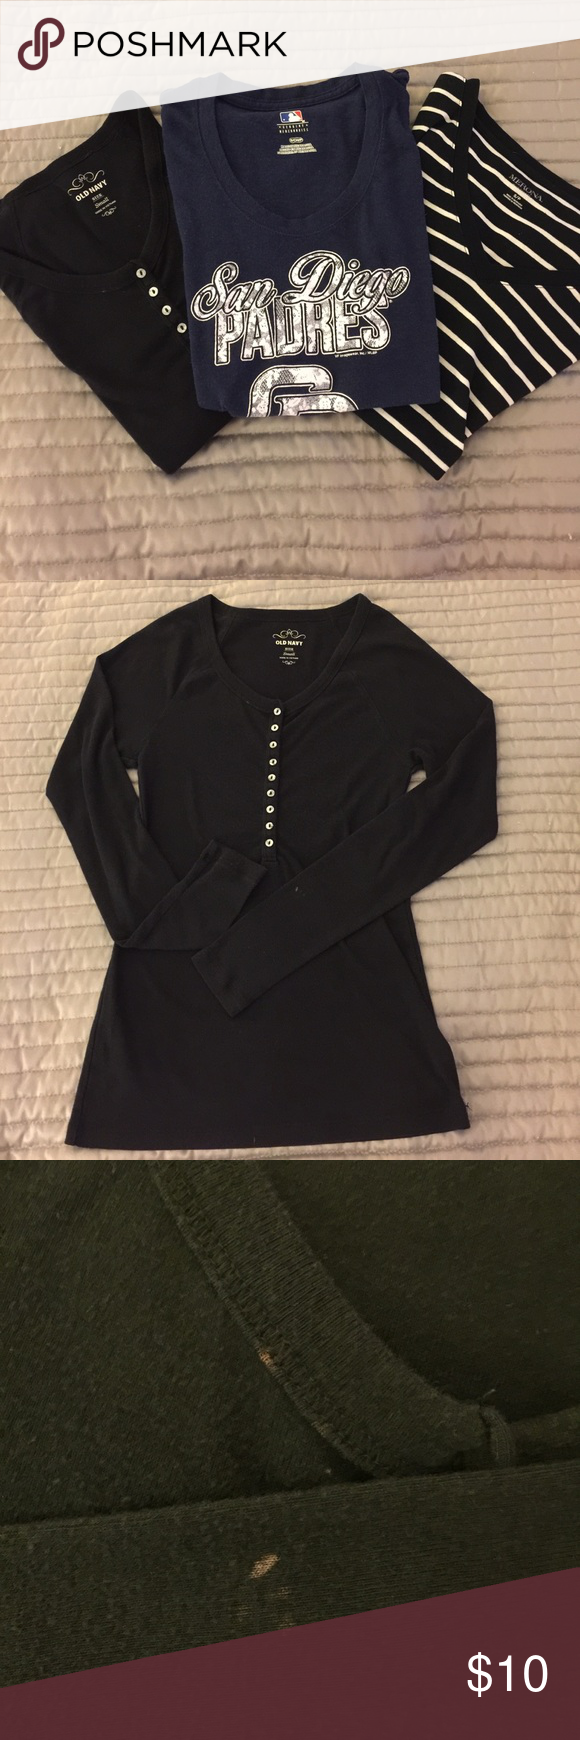 T-shirt bundle 3 size small shirts. One long sleeve black Henley style. Two tiny spots as noted in photo but not really visible. One very soft black and white stripe. Excellent condition. One SD Padre shirt. Also very soft in excellent condition Tops Tees - Short Sleeve